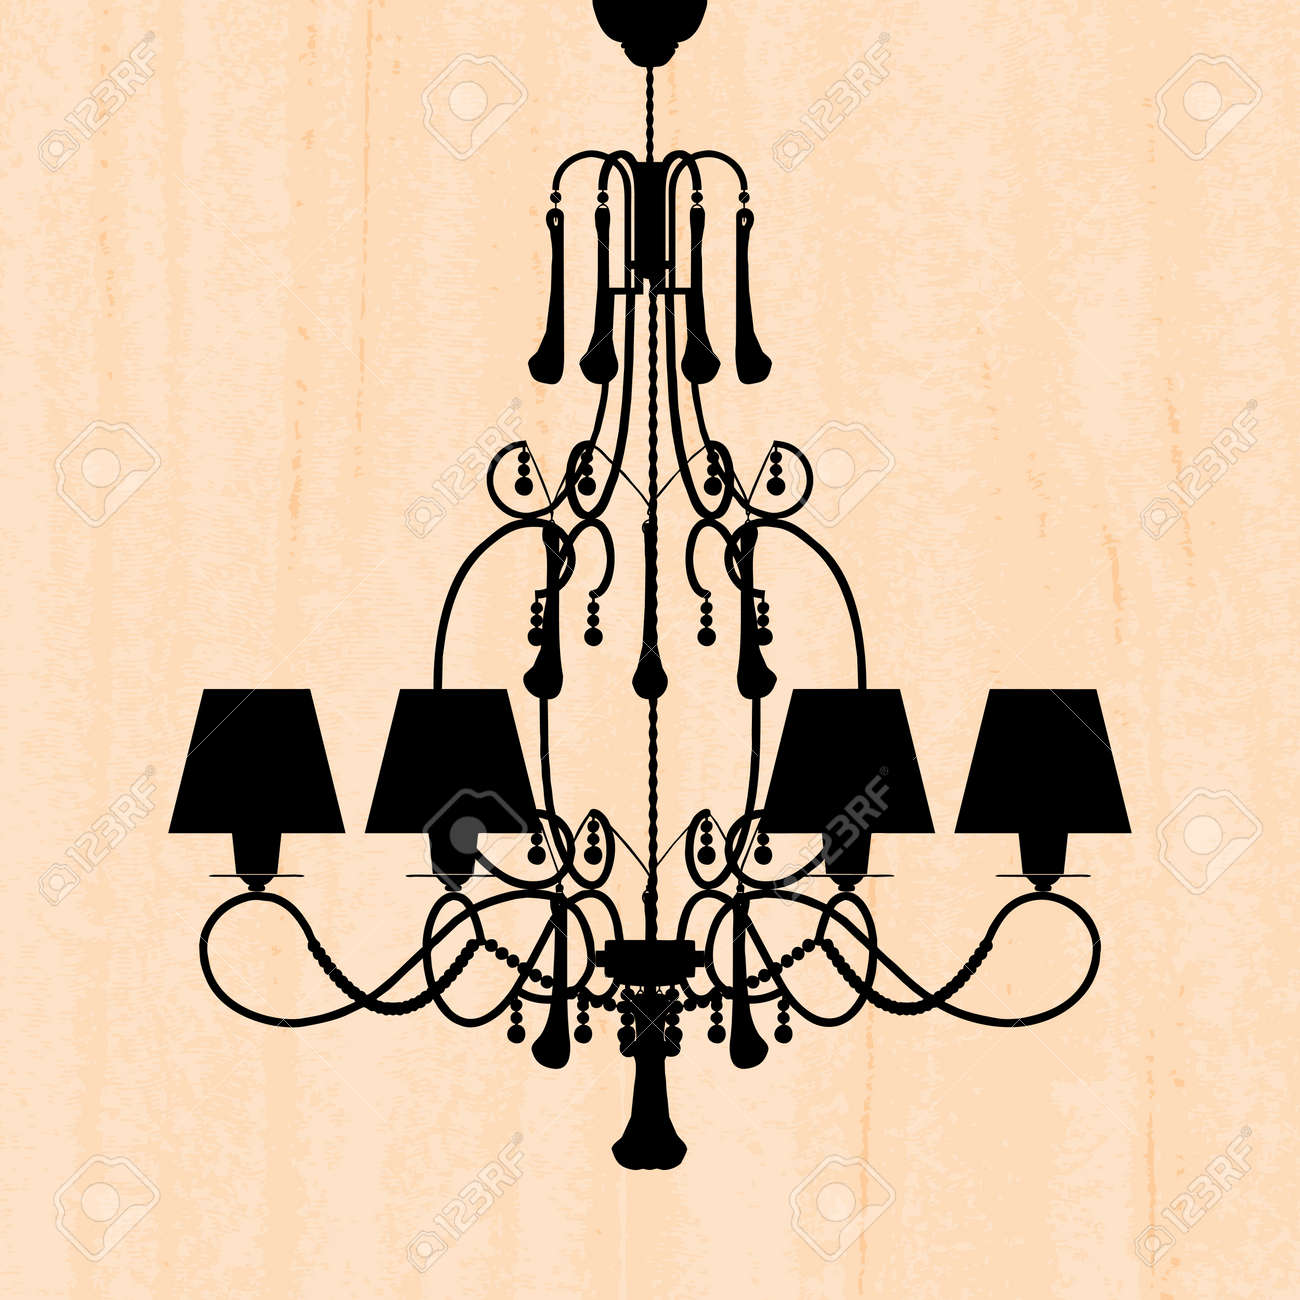 Silhouette of luxury chandelier on a scratched peachy wallpaper silhouette of luxury chandelier on a scratched peachy wallpaper template design of invitation with chandelier arubaitofo Image collections